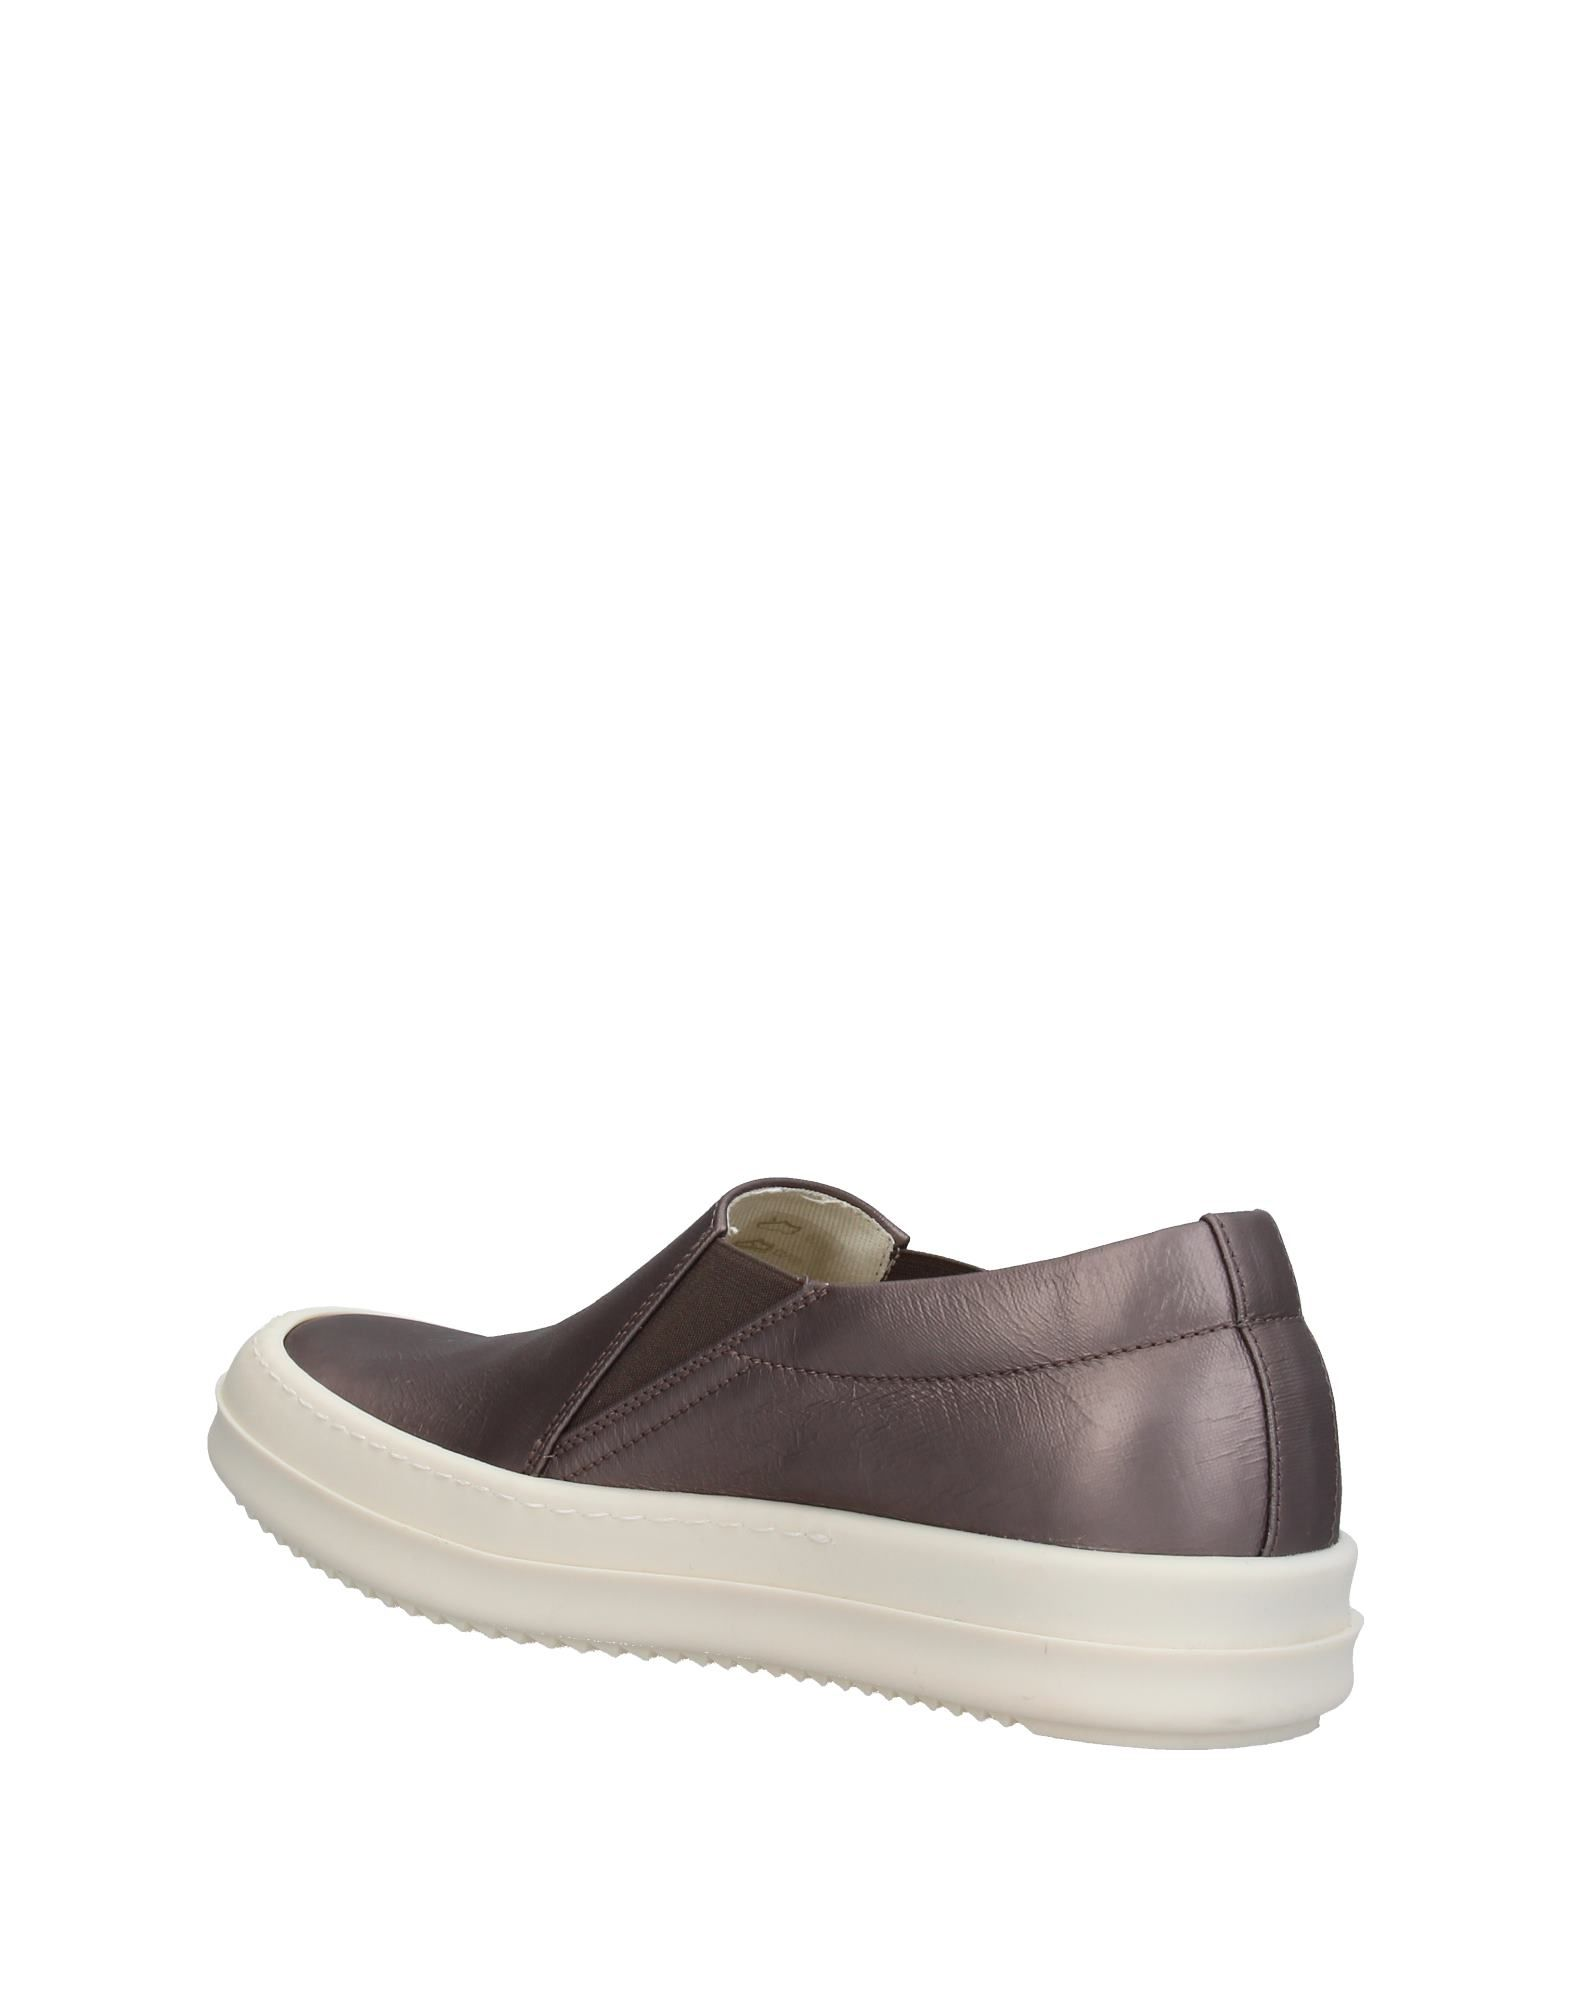 Sneakers By Drkshdw By Sneakers Rick Owens Donna - 11395074CJ 608a5a